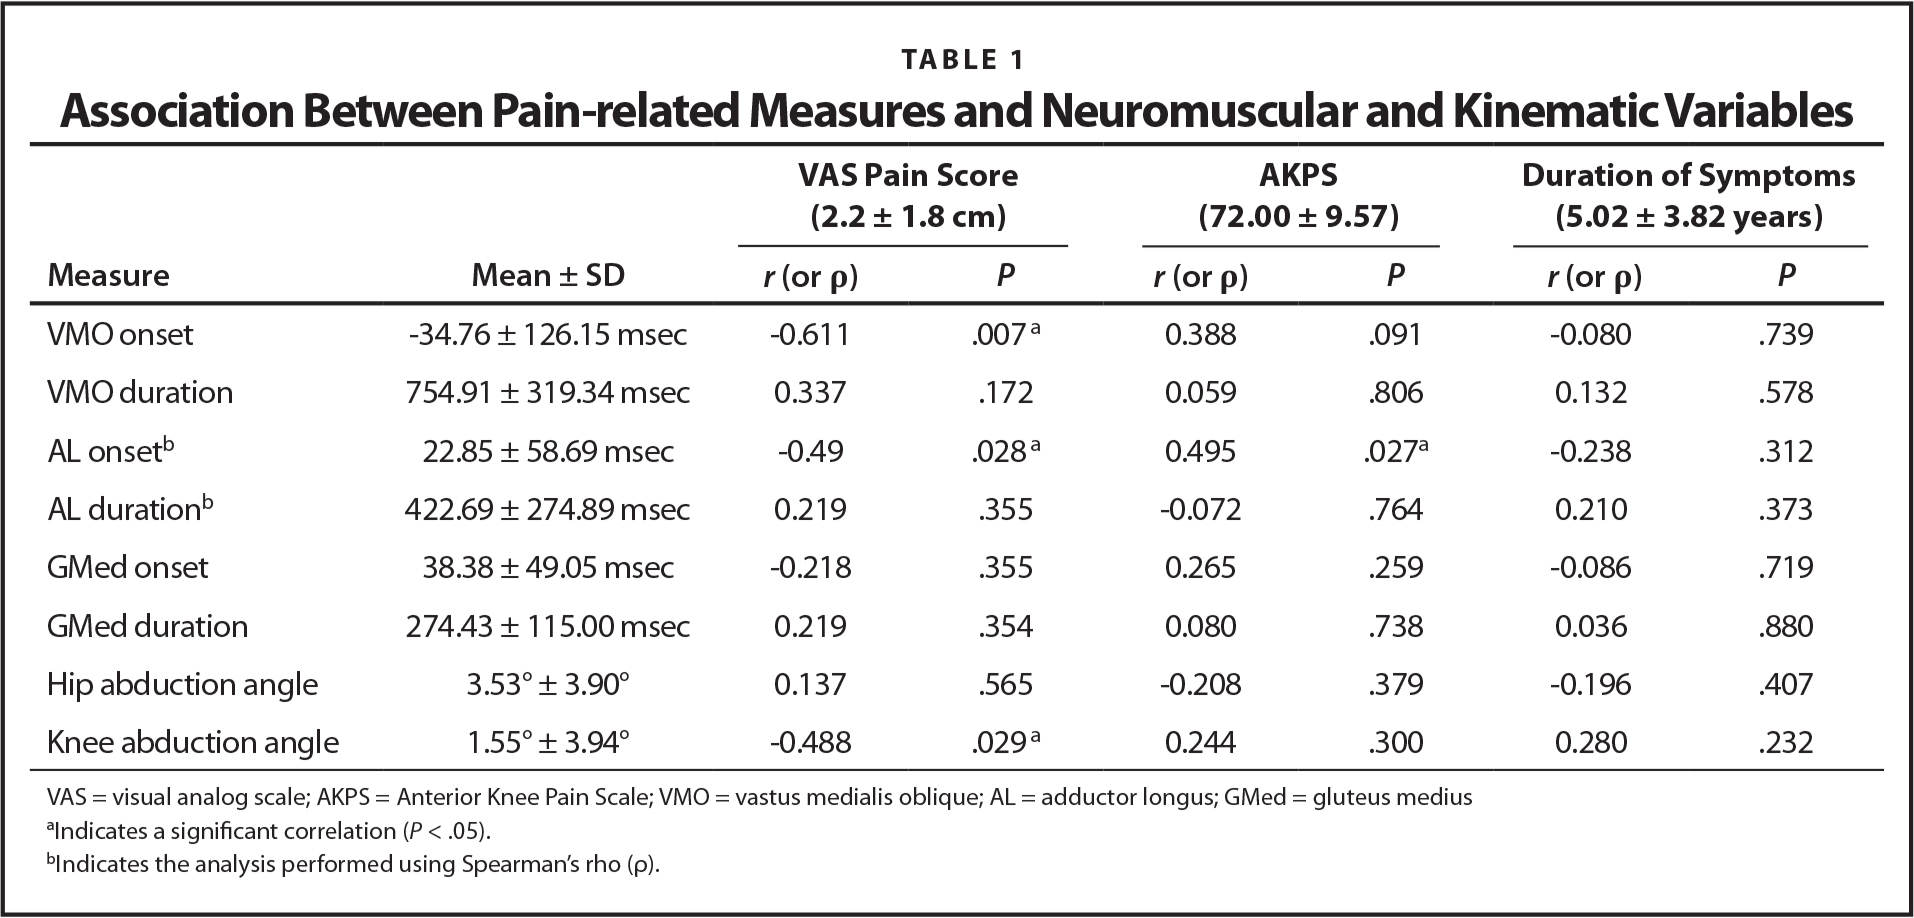 Association Between Pain-related Measures and Neuromuscular and Kinematic Variables